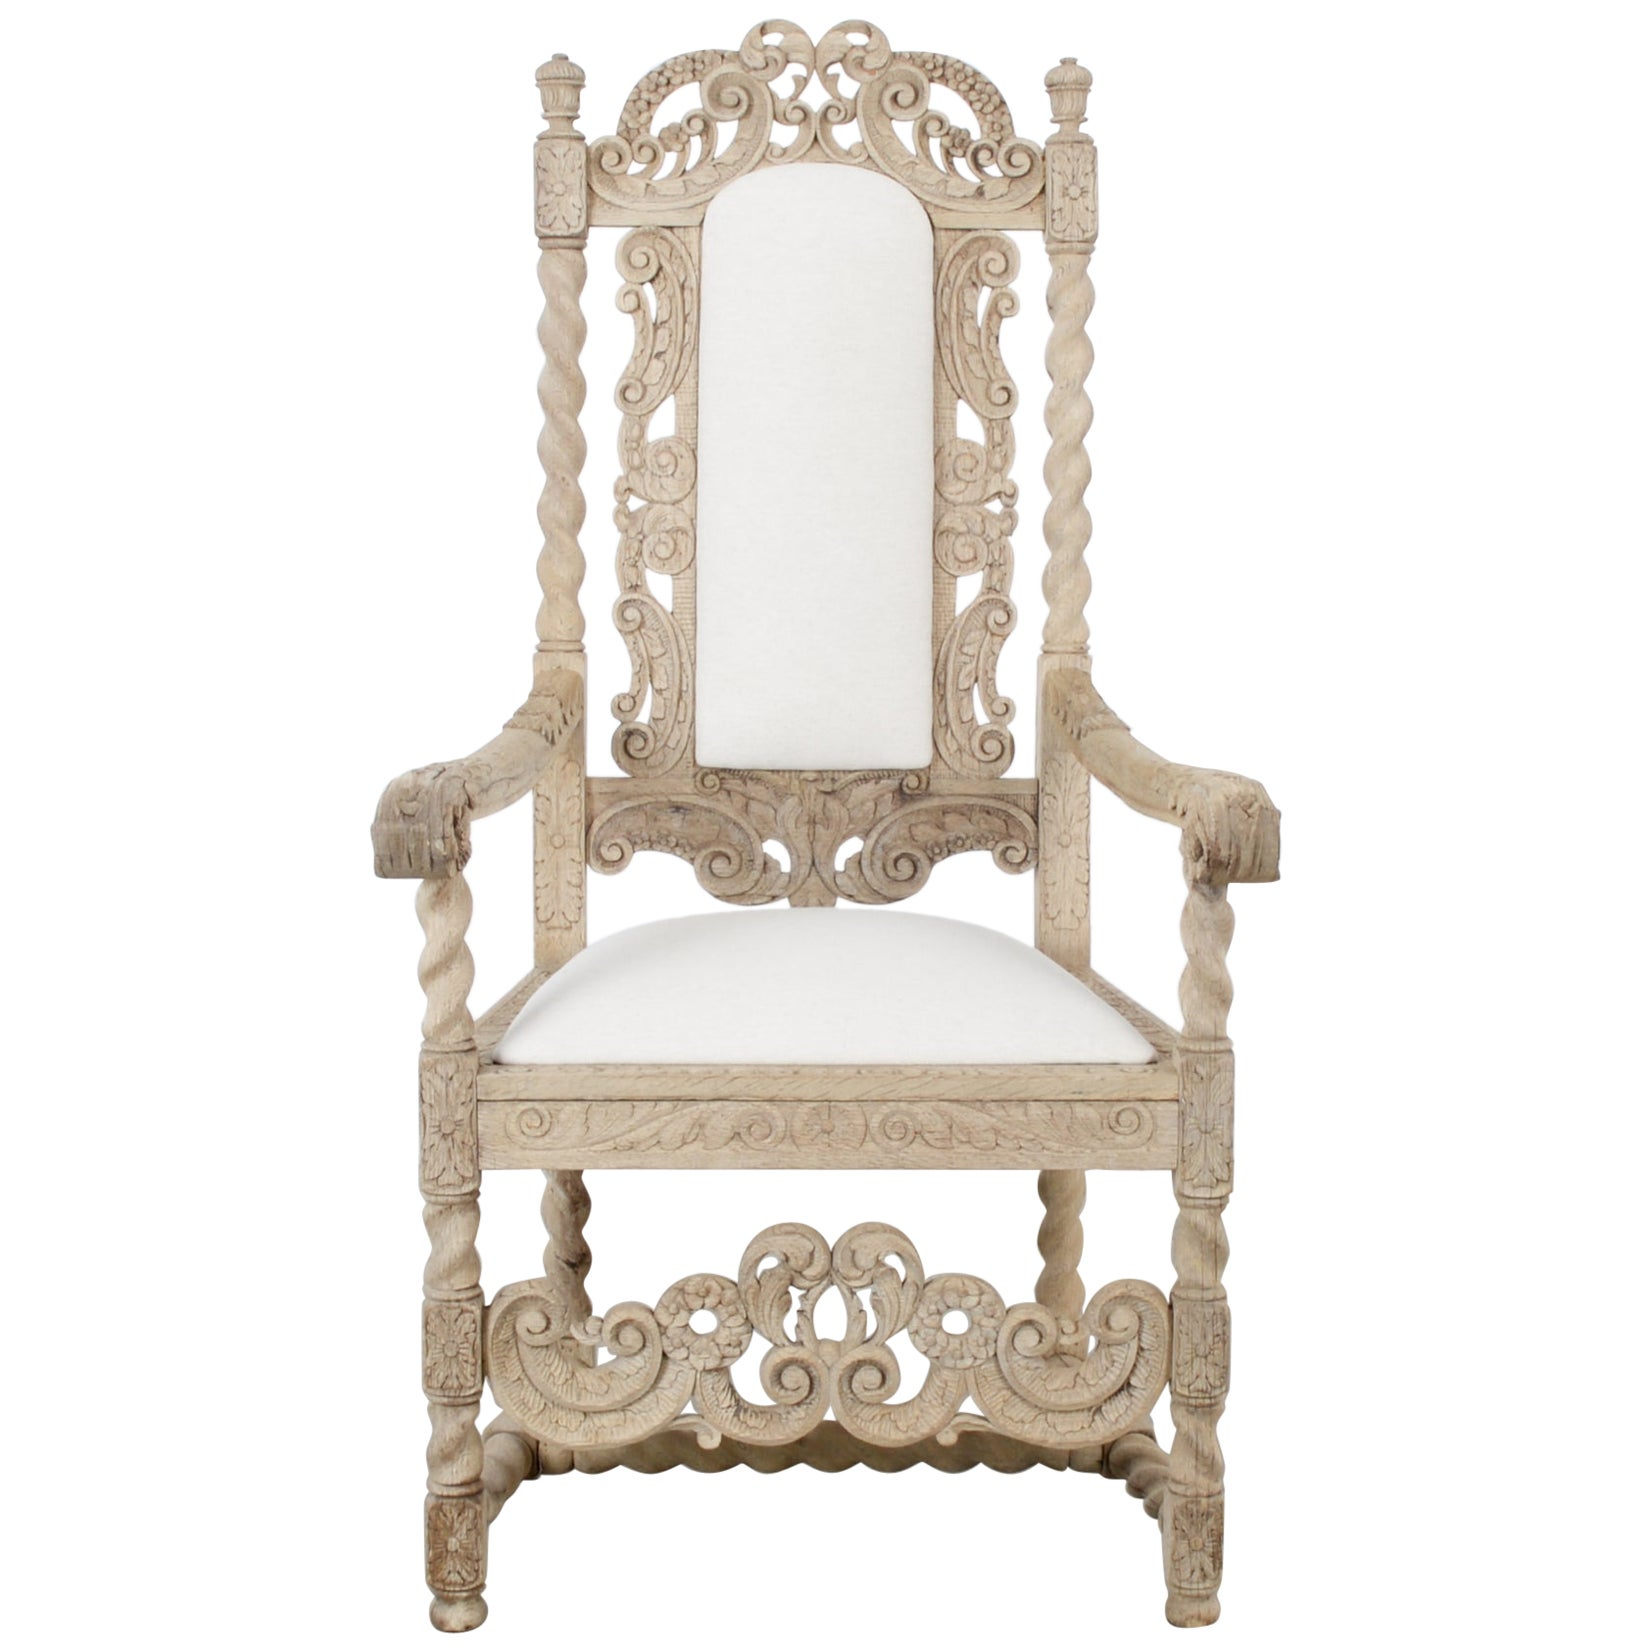 Late 19th Century French Ornate Oak Armchair